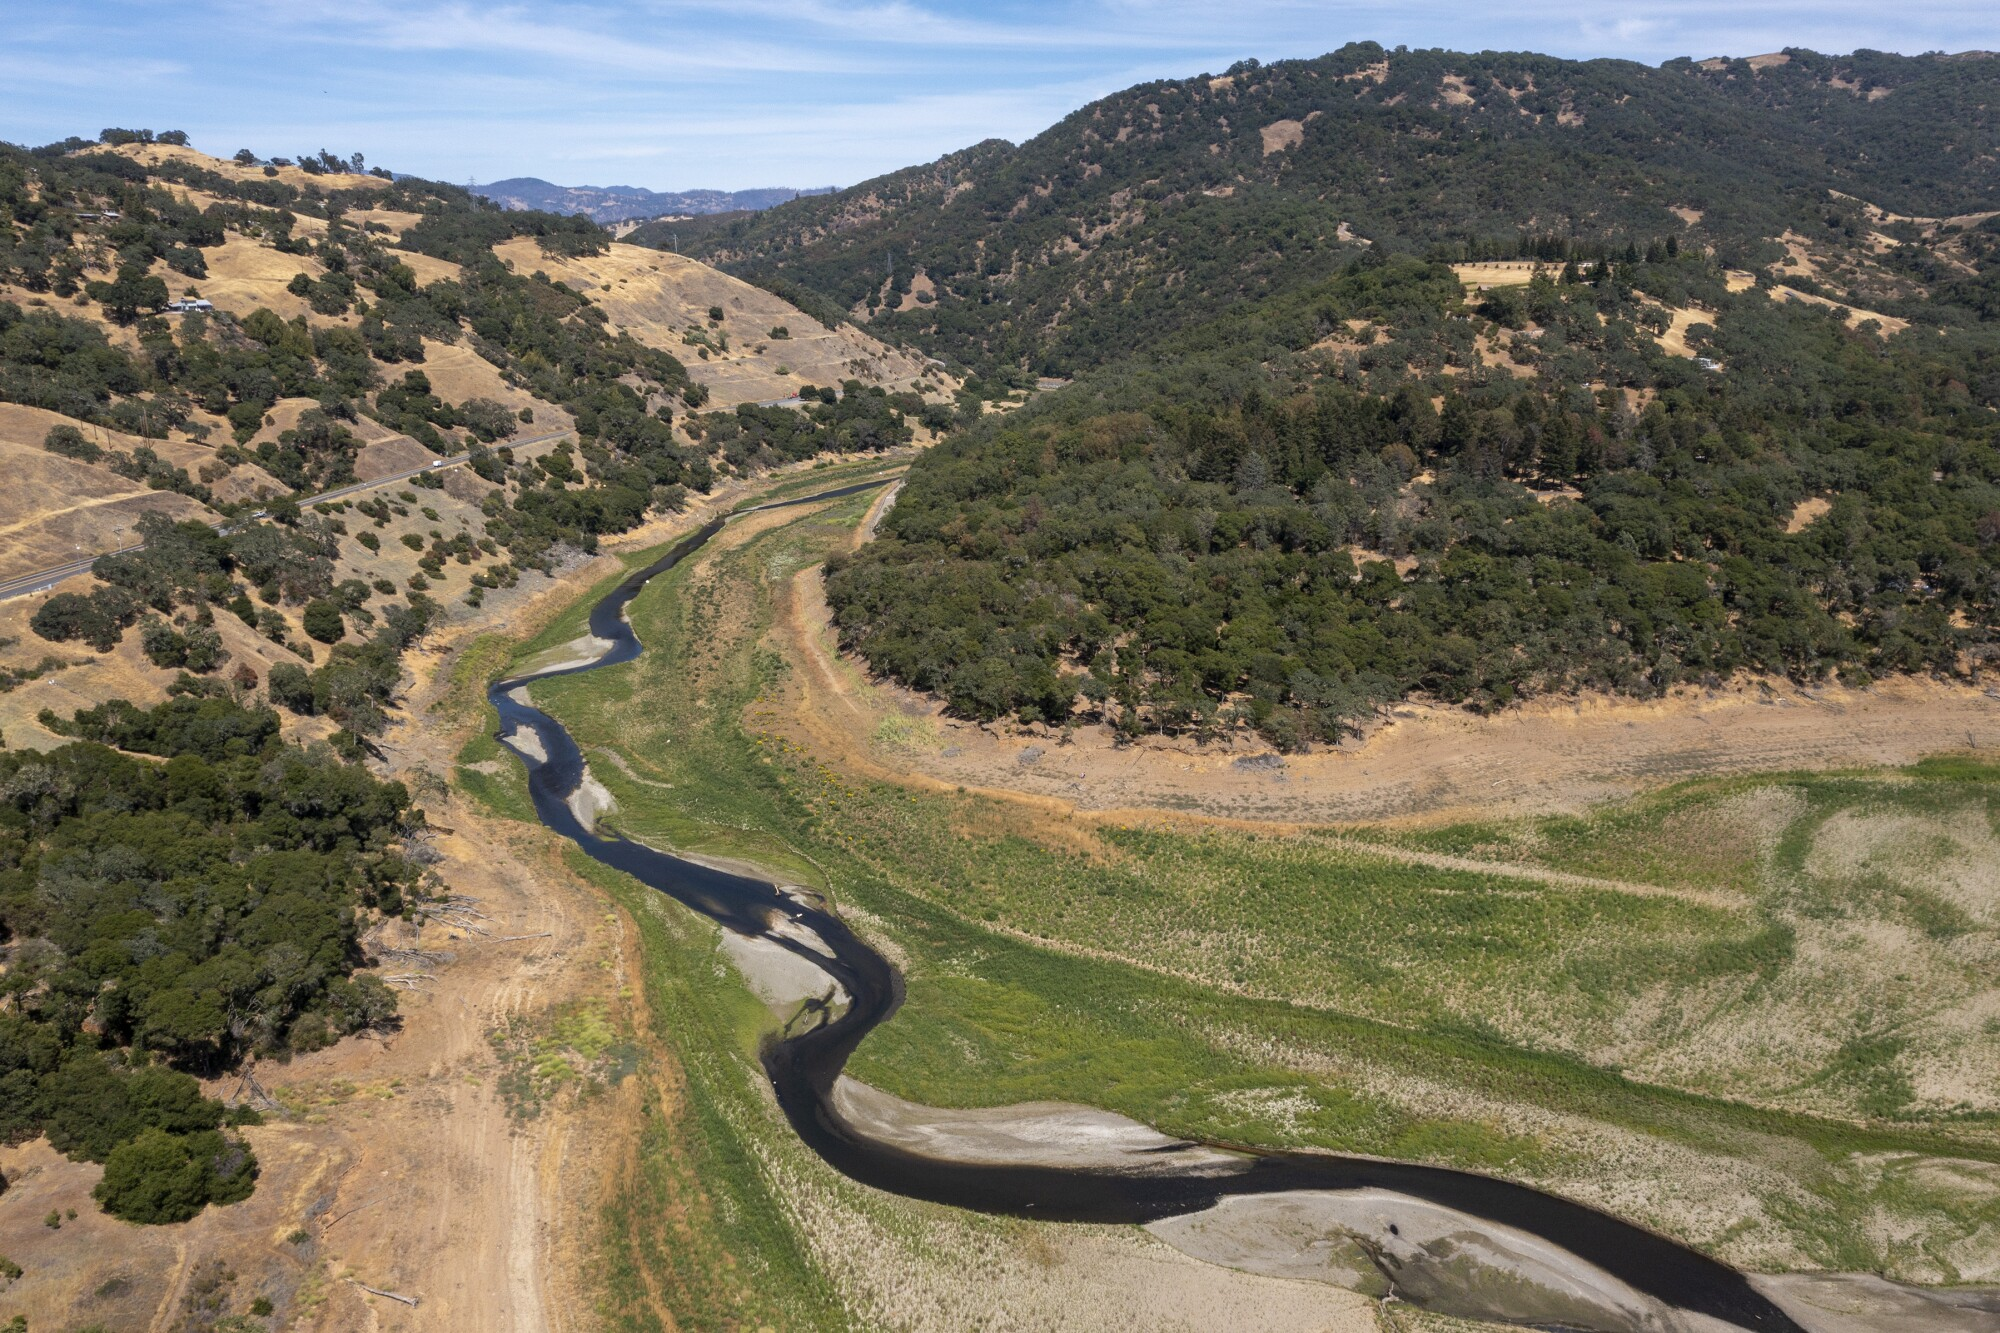 The Russian River, just north of drought-stricken Lake Mendocino in Ukiah, Calif.